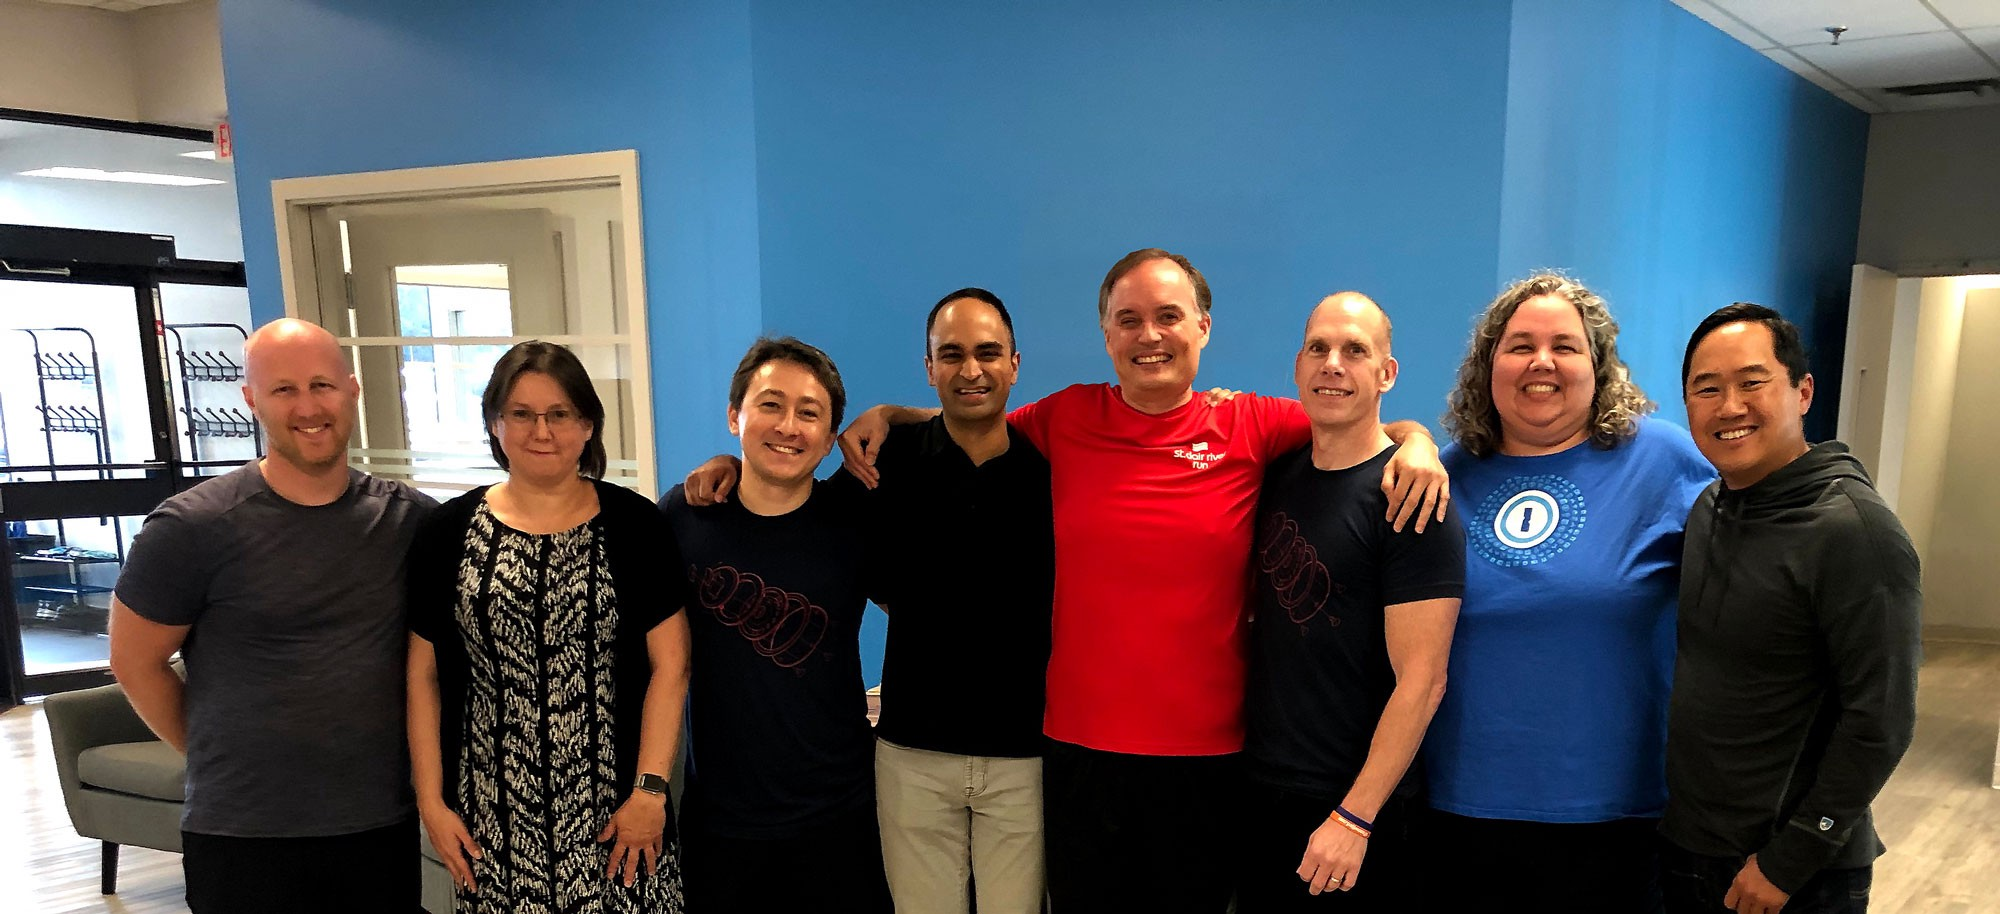 Group hug after sealing the deal in our St. Thomas, Ontario office. From left to right: Dan Levine, Natalia Karimova, Roustem